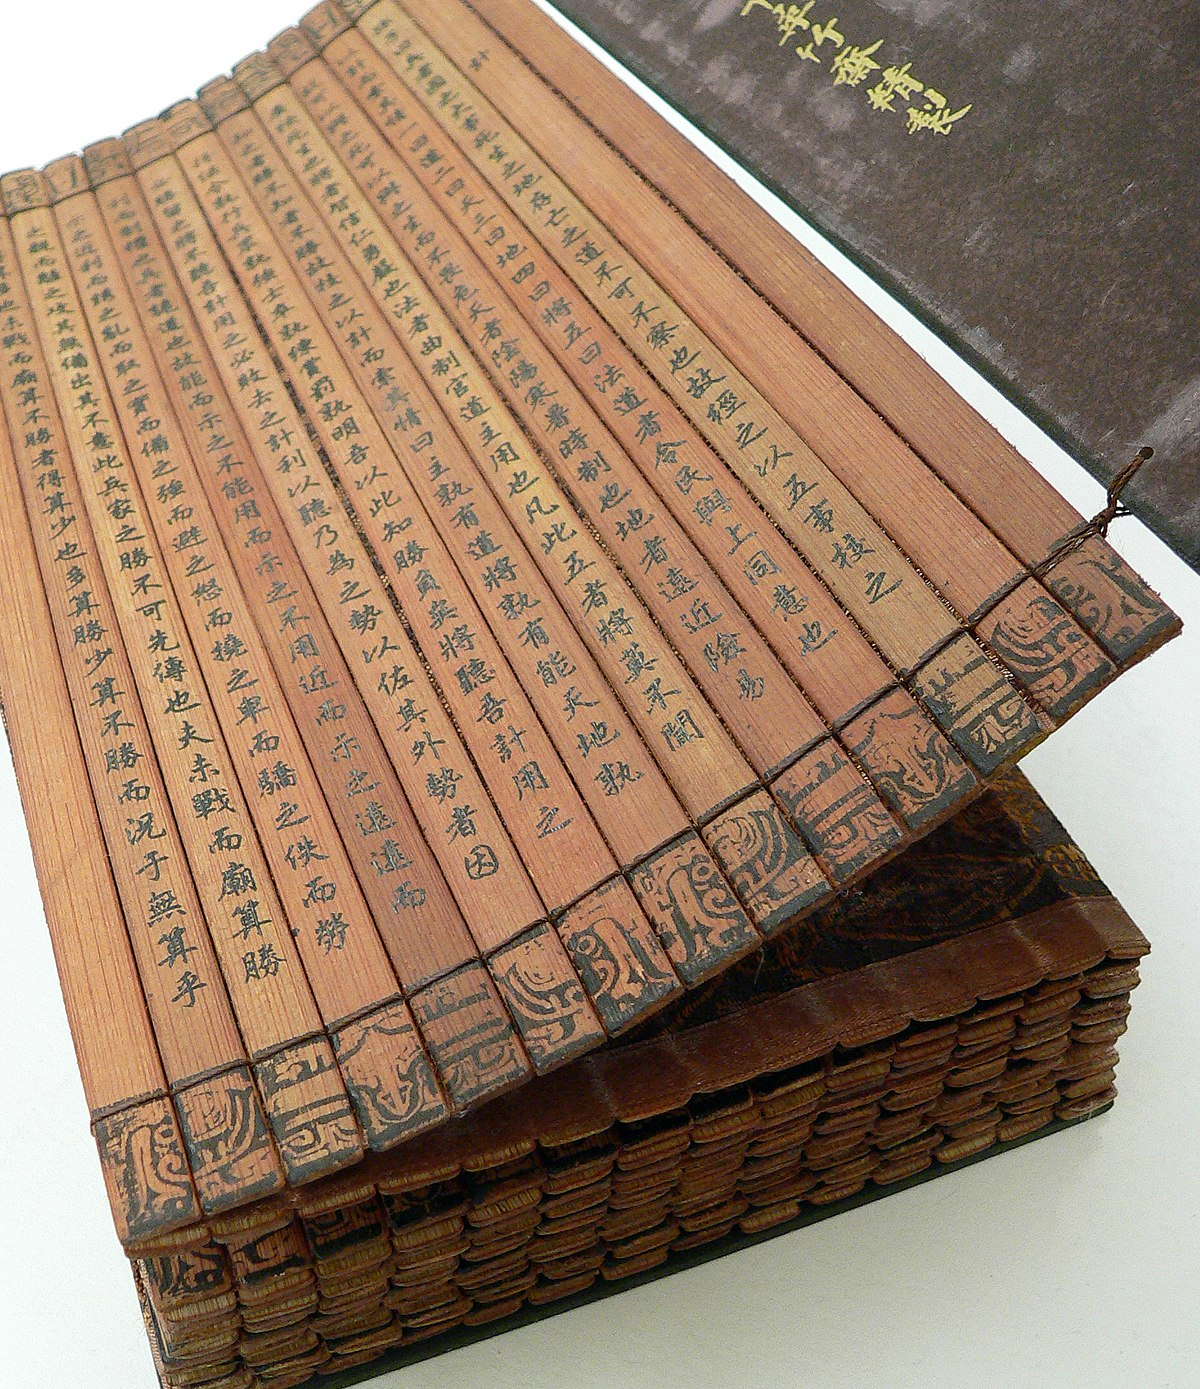 Traditional Chinese bookbinding - Wikipedia